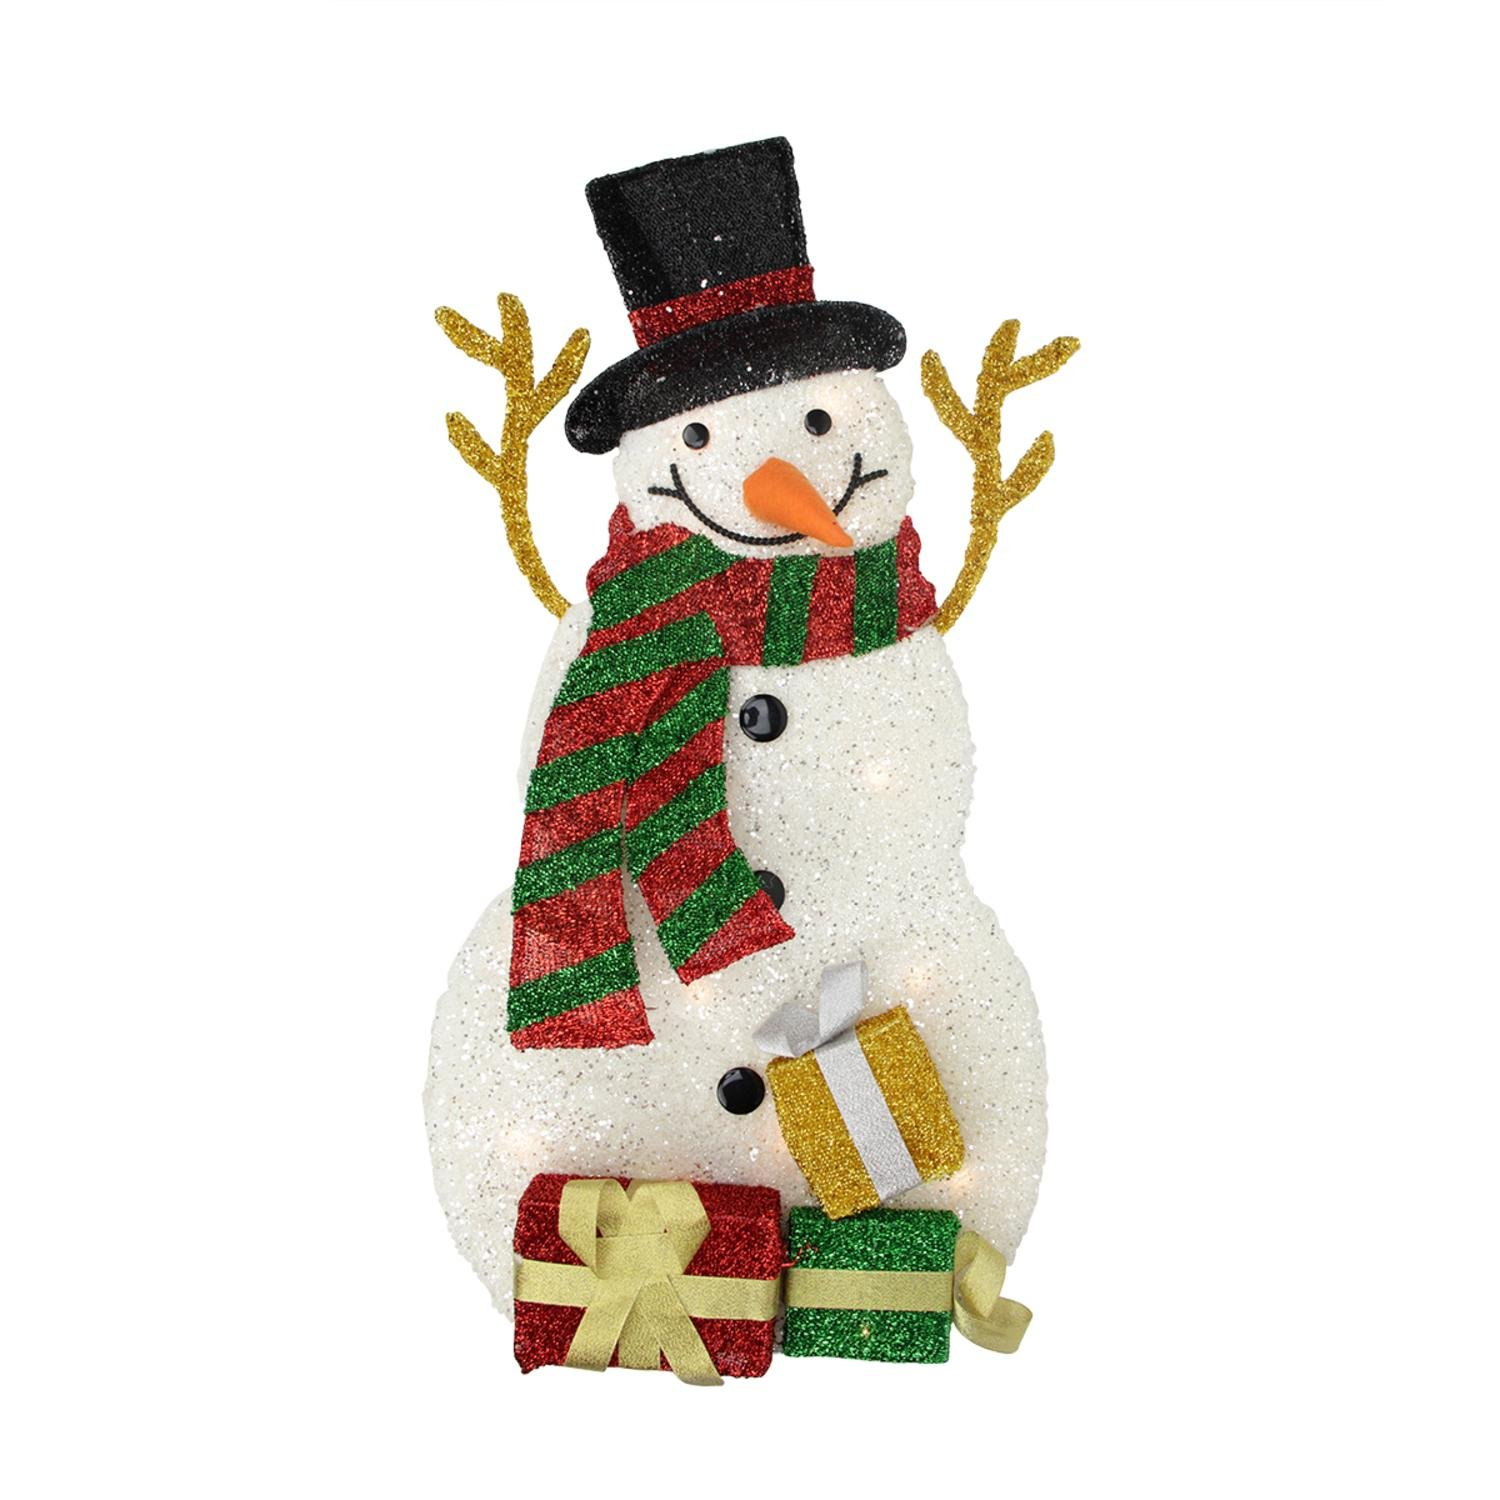 Northlight H85208 31.5'' Lighted Plush Tinsel Snowman with Gift Christmas Yard Art Decoration